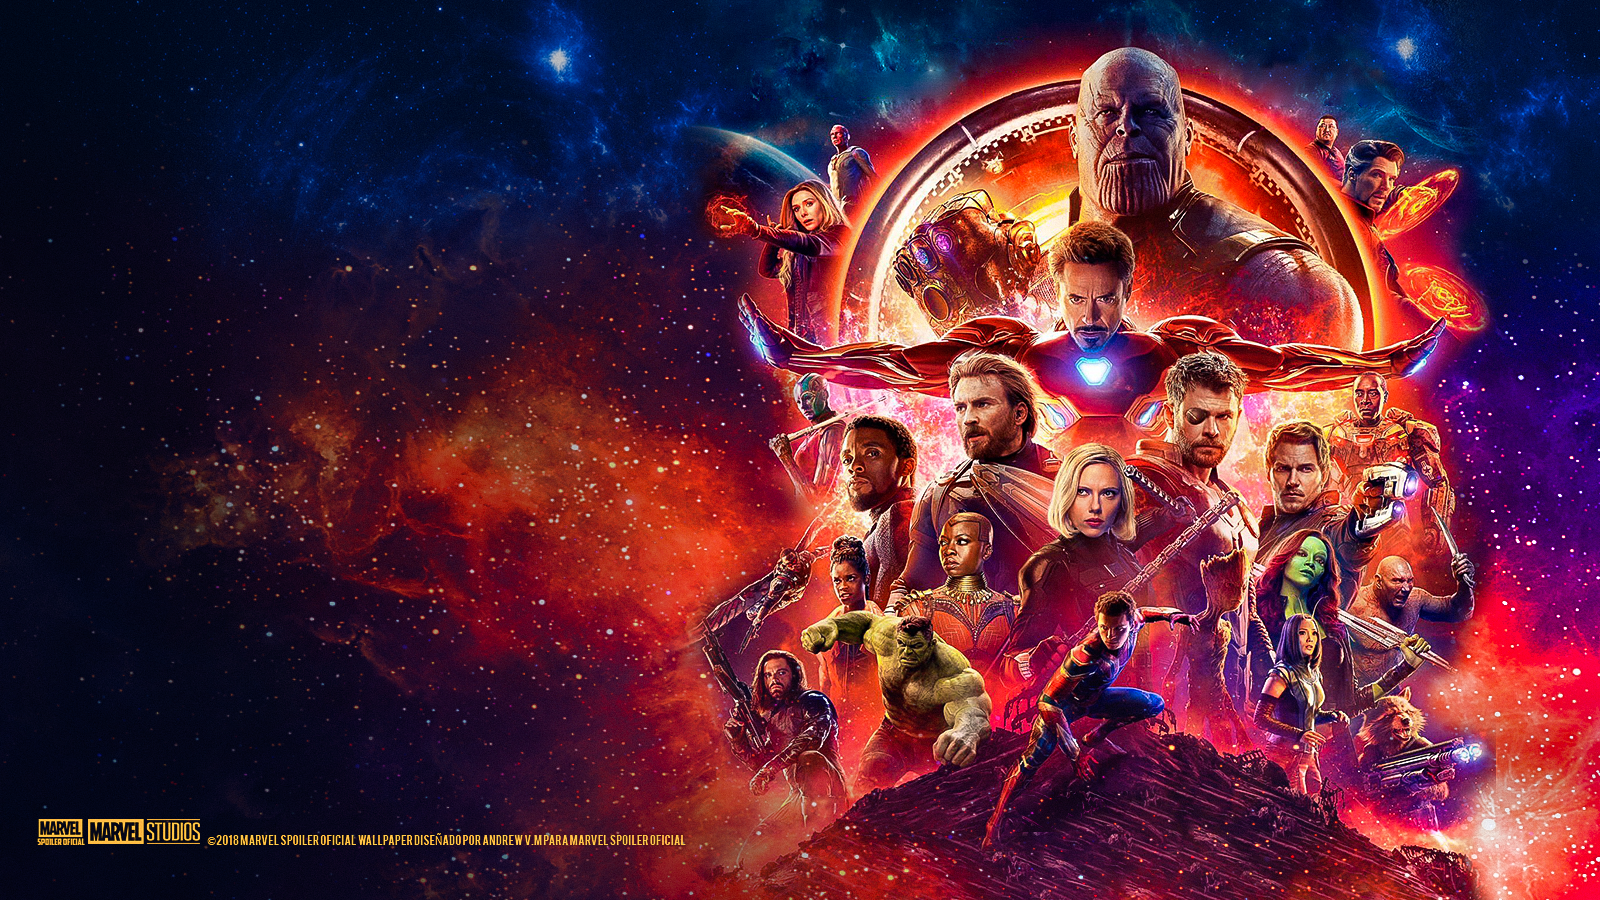 Avengers  Infinity War     Movie Review  Revised      Dania Yamout     Medium Avengers  Infinity War